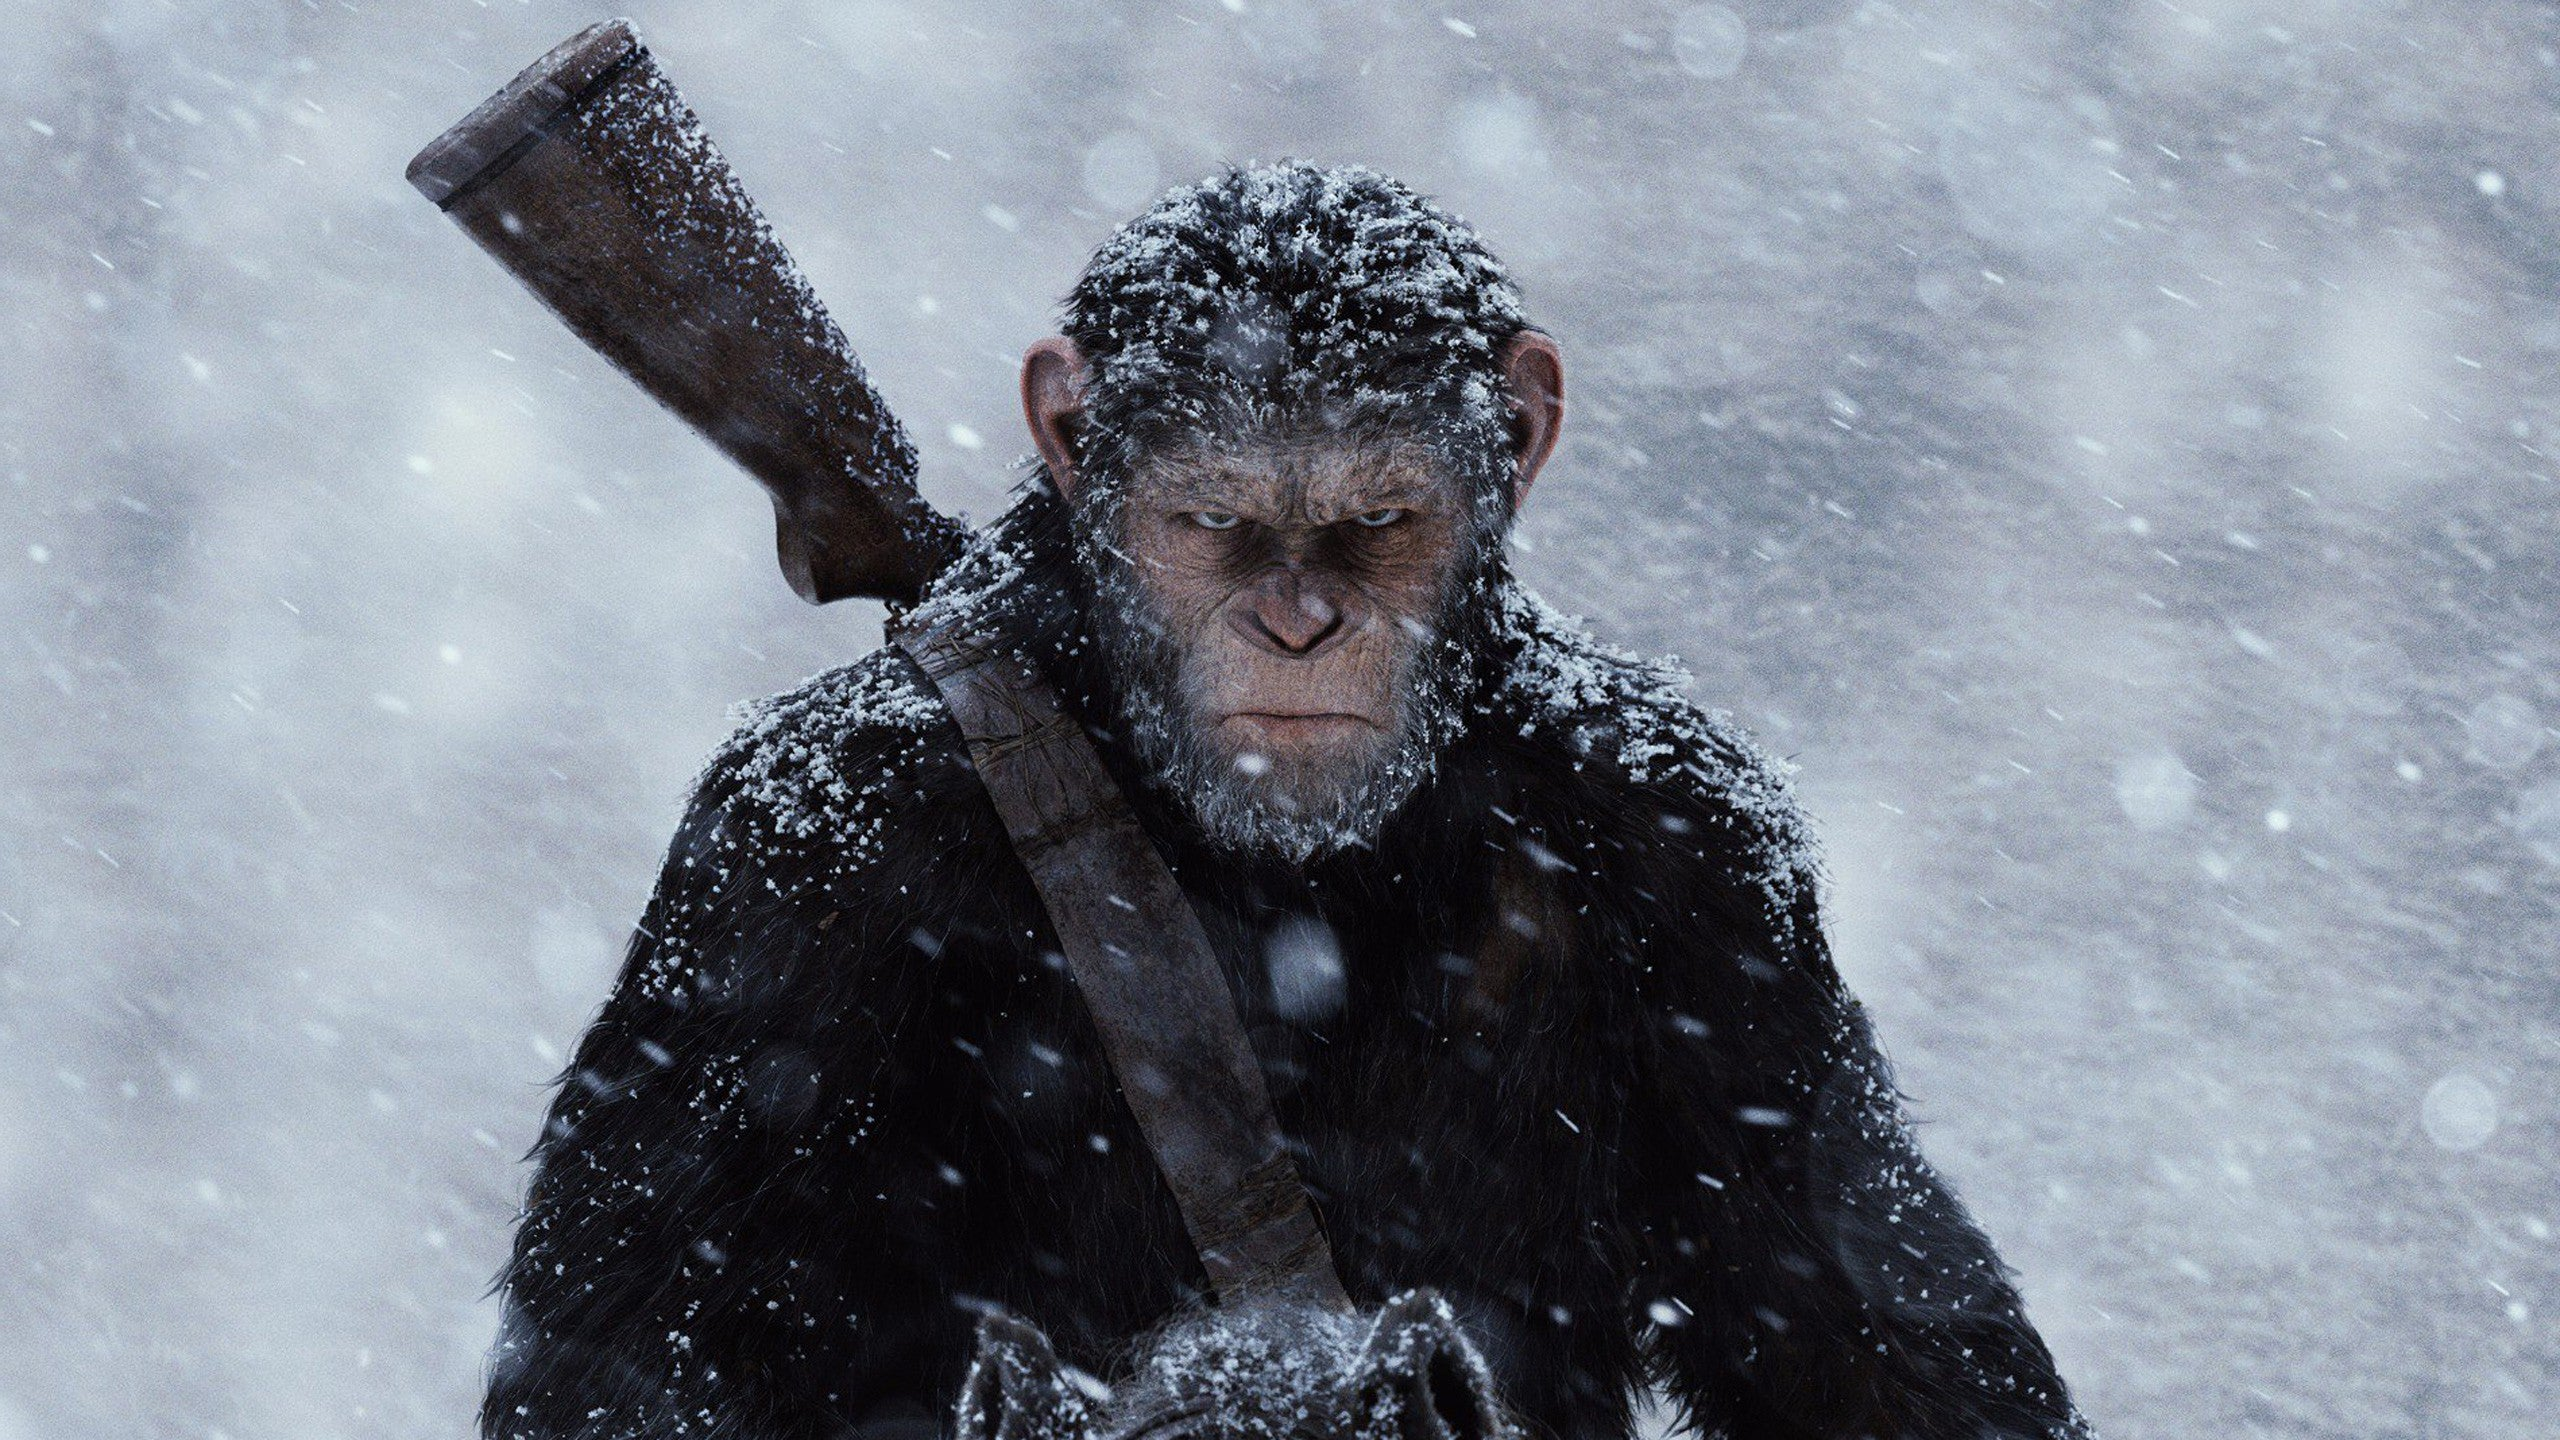 How Scientifically Plausible Is The 'Simian Flu' InPlanet Of The Apes?